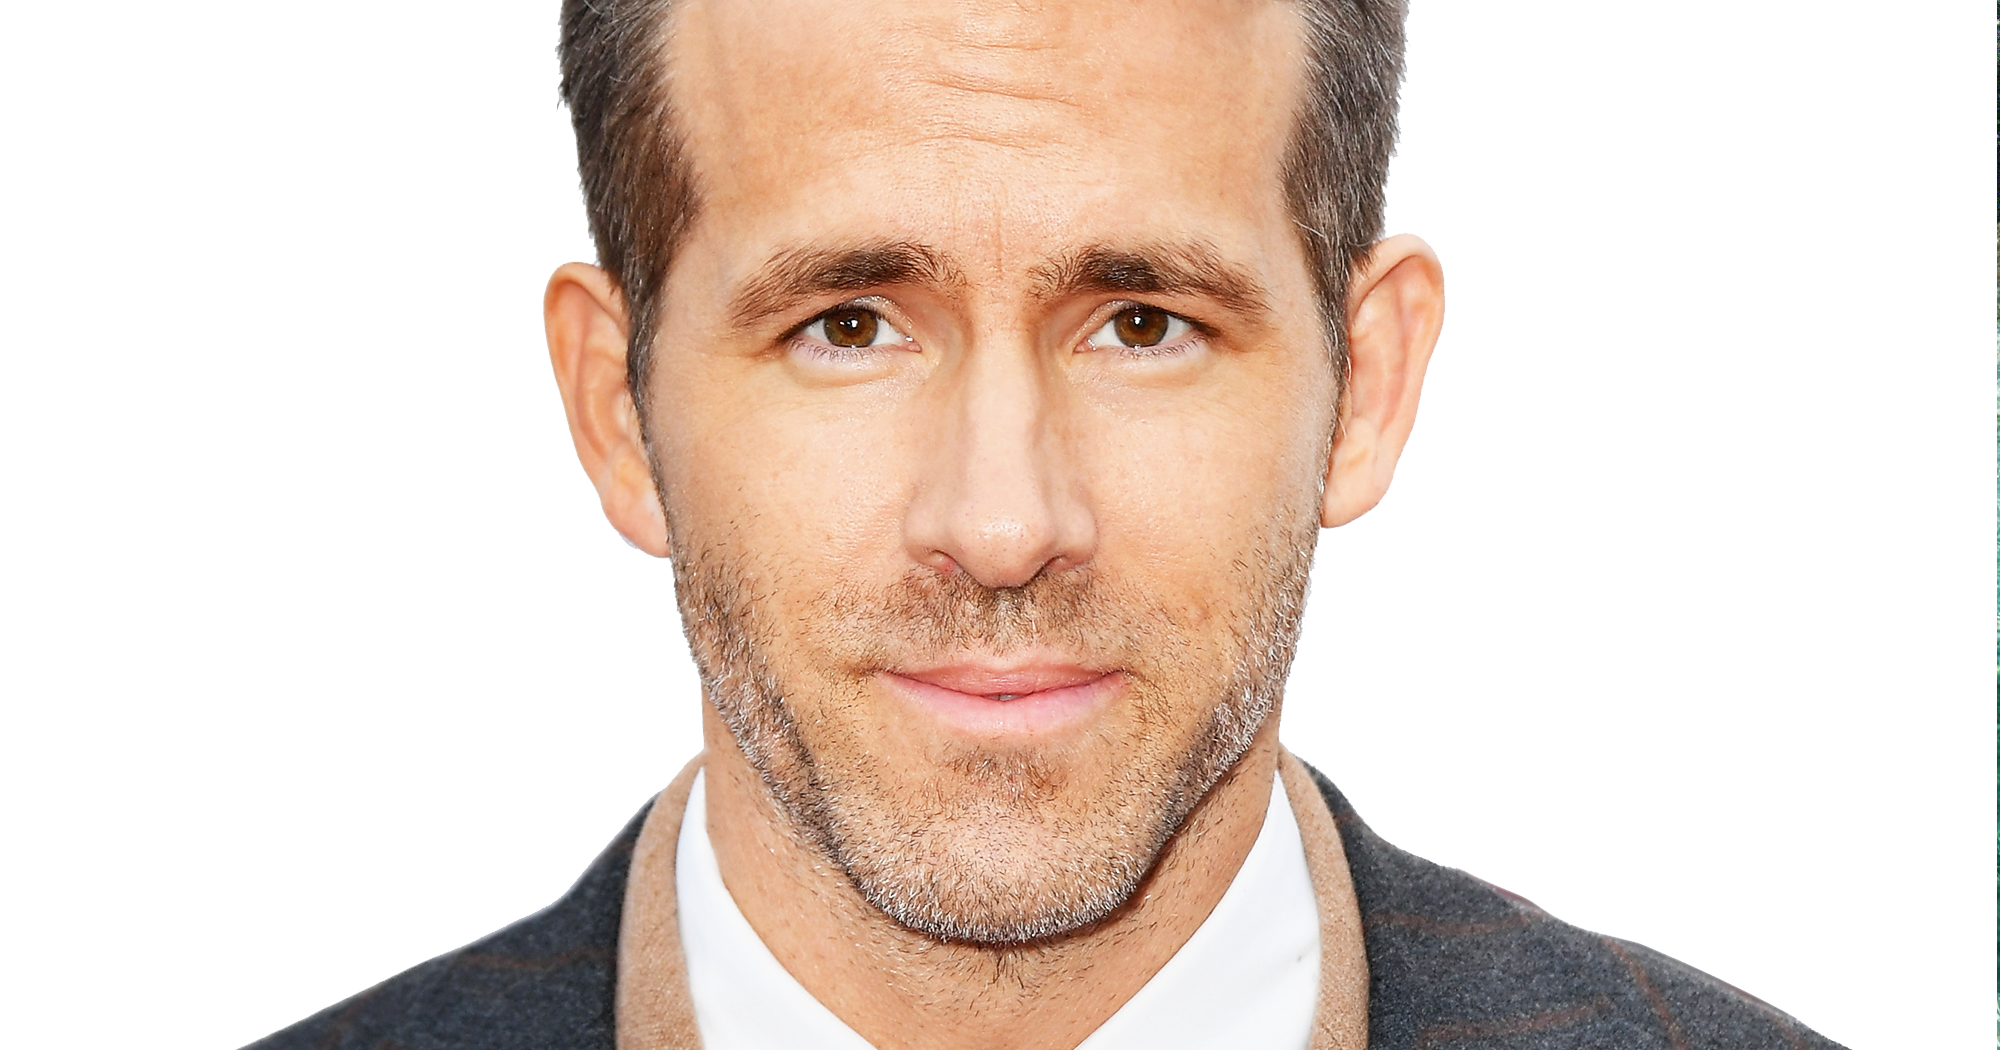 Ryan Reynolds' Favourite Smell Is Douglas Firs & Canadian Rain | Refinery 29